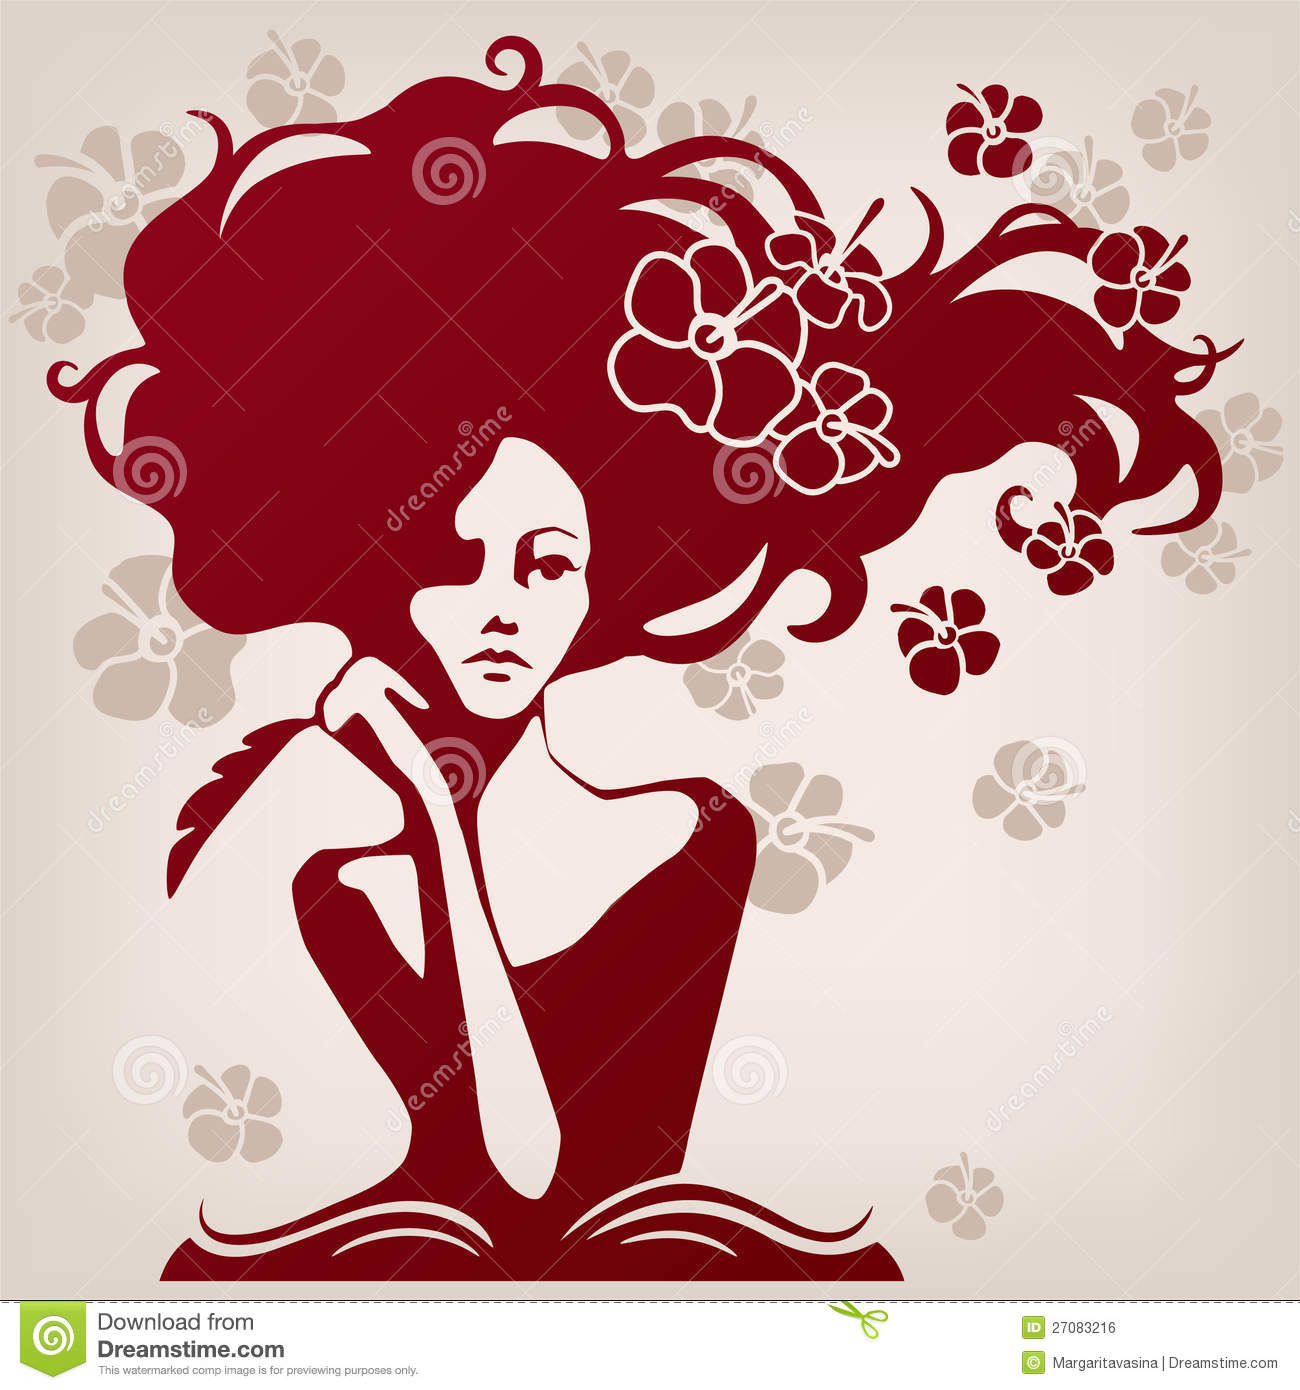 """plight of women in literature essay What is the cost to women of being consigned to that plight 2 """"the cask of amontillado"""" uses a first-person narrator (a narrator that is a character in the story), and, sometimes, first-person narrators can be untrustworthy."""